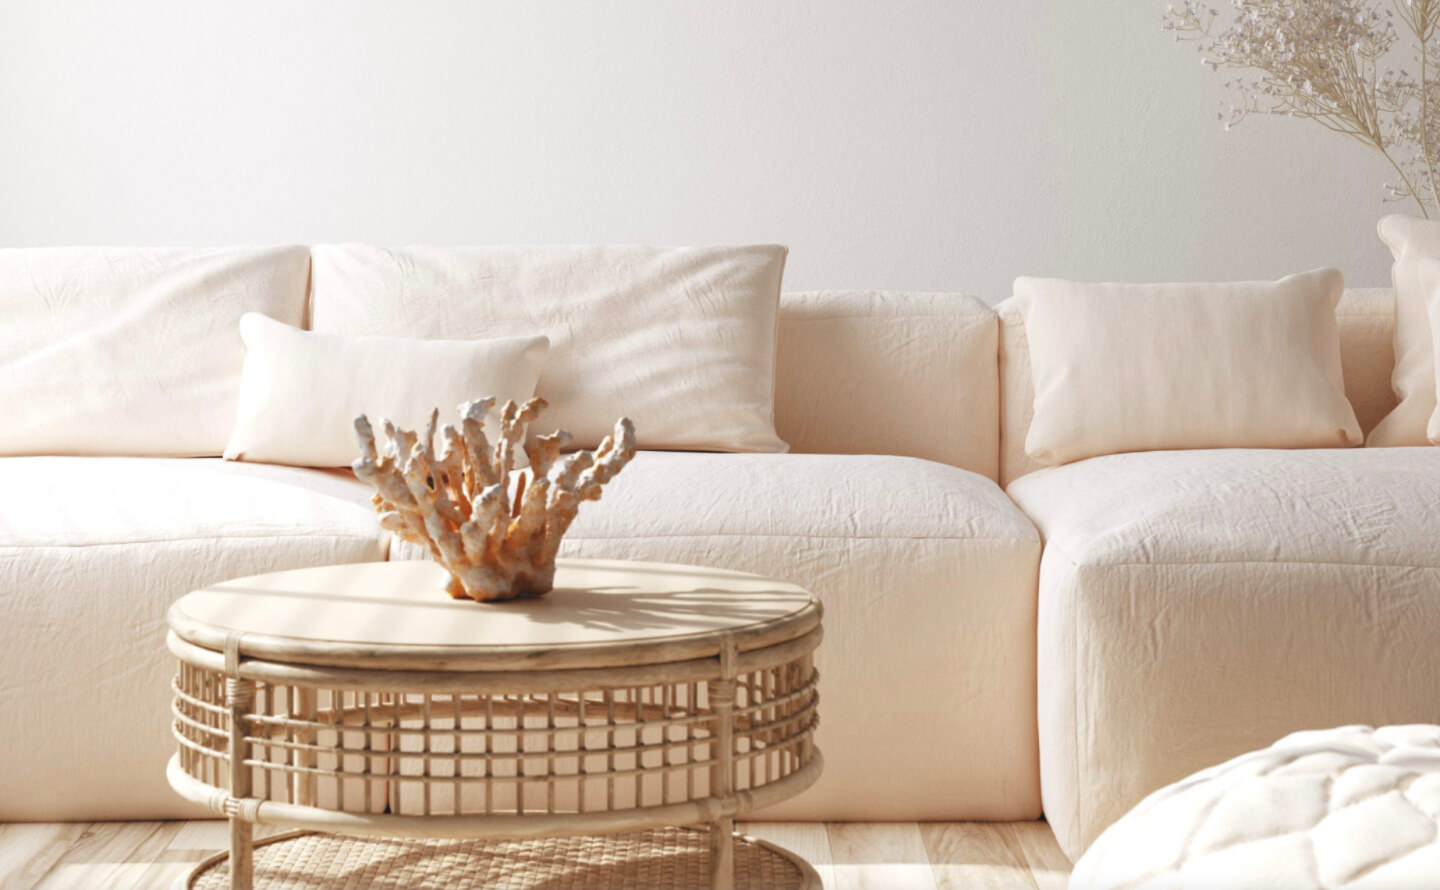 LUXURIA LIFESTYLE LONDON WELCOMES BEL SOFA TO OUR LONDON/UK BUSINESS AND EVENTS CLUB